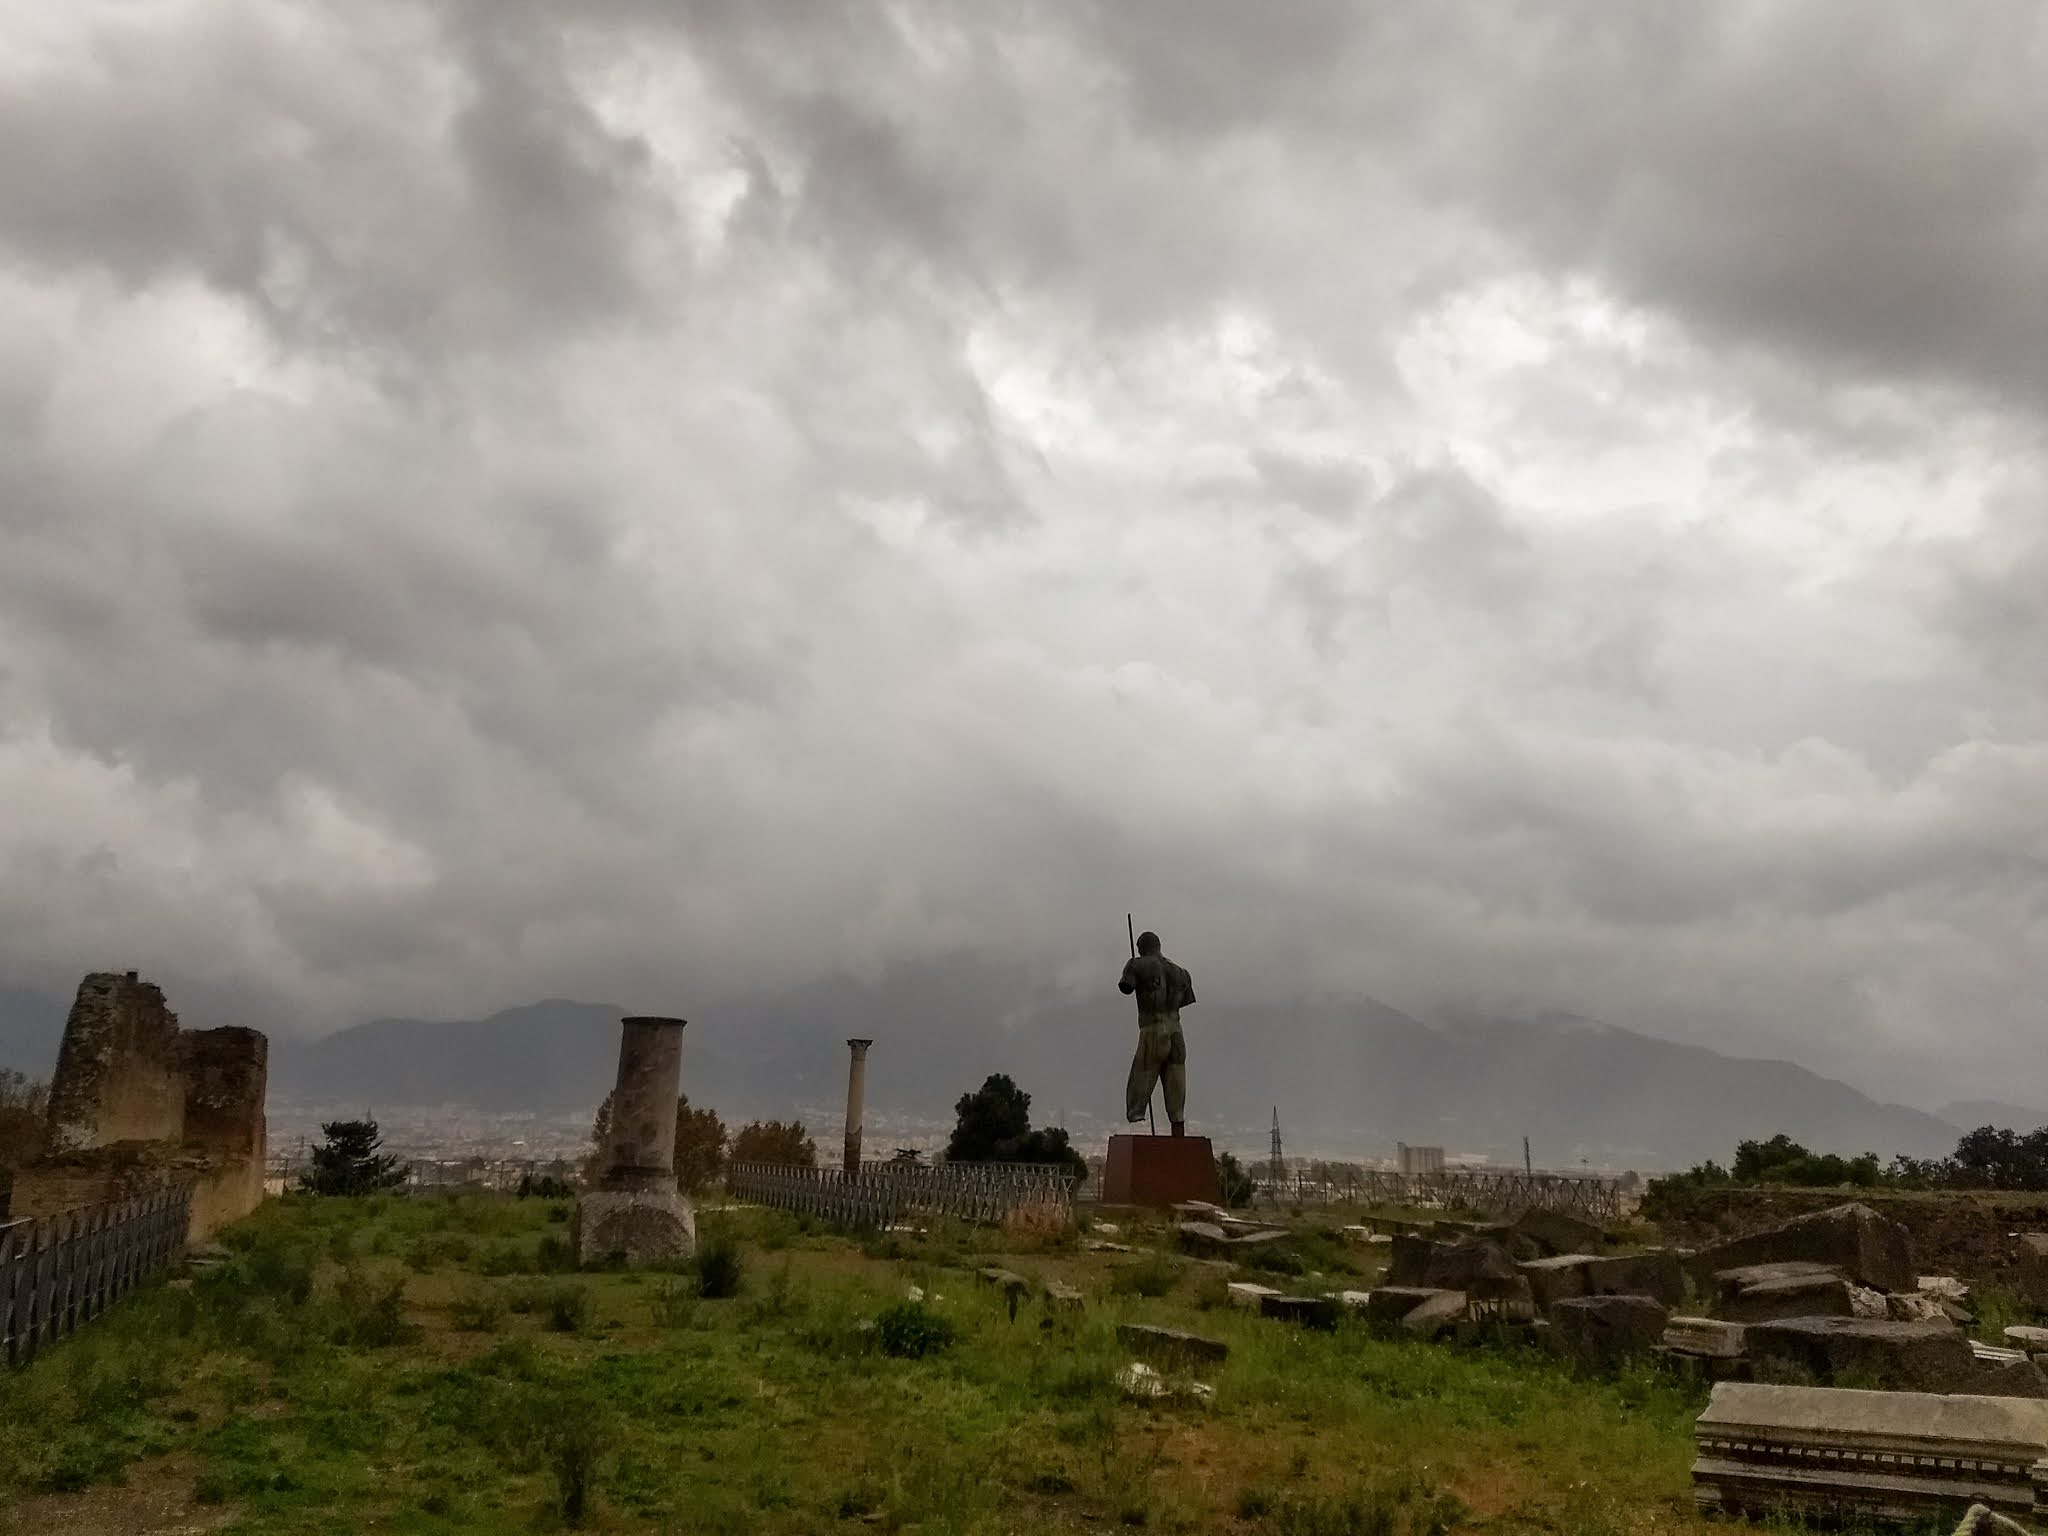 Ruins of Pompeii on a cloudy day with obscured Mount Vesuvius.